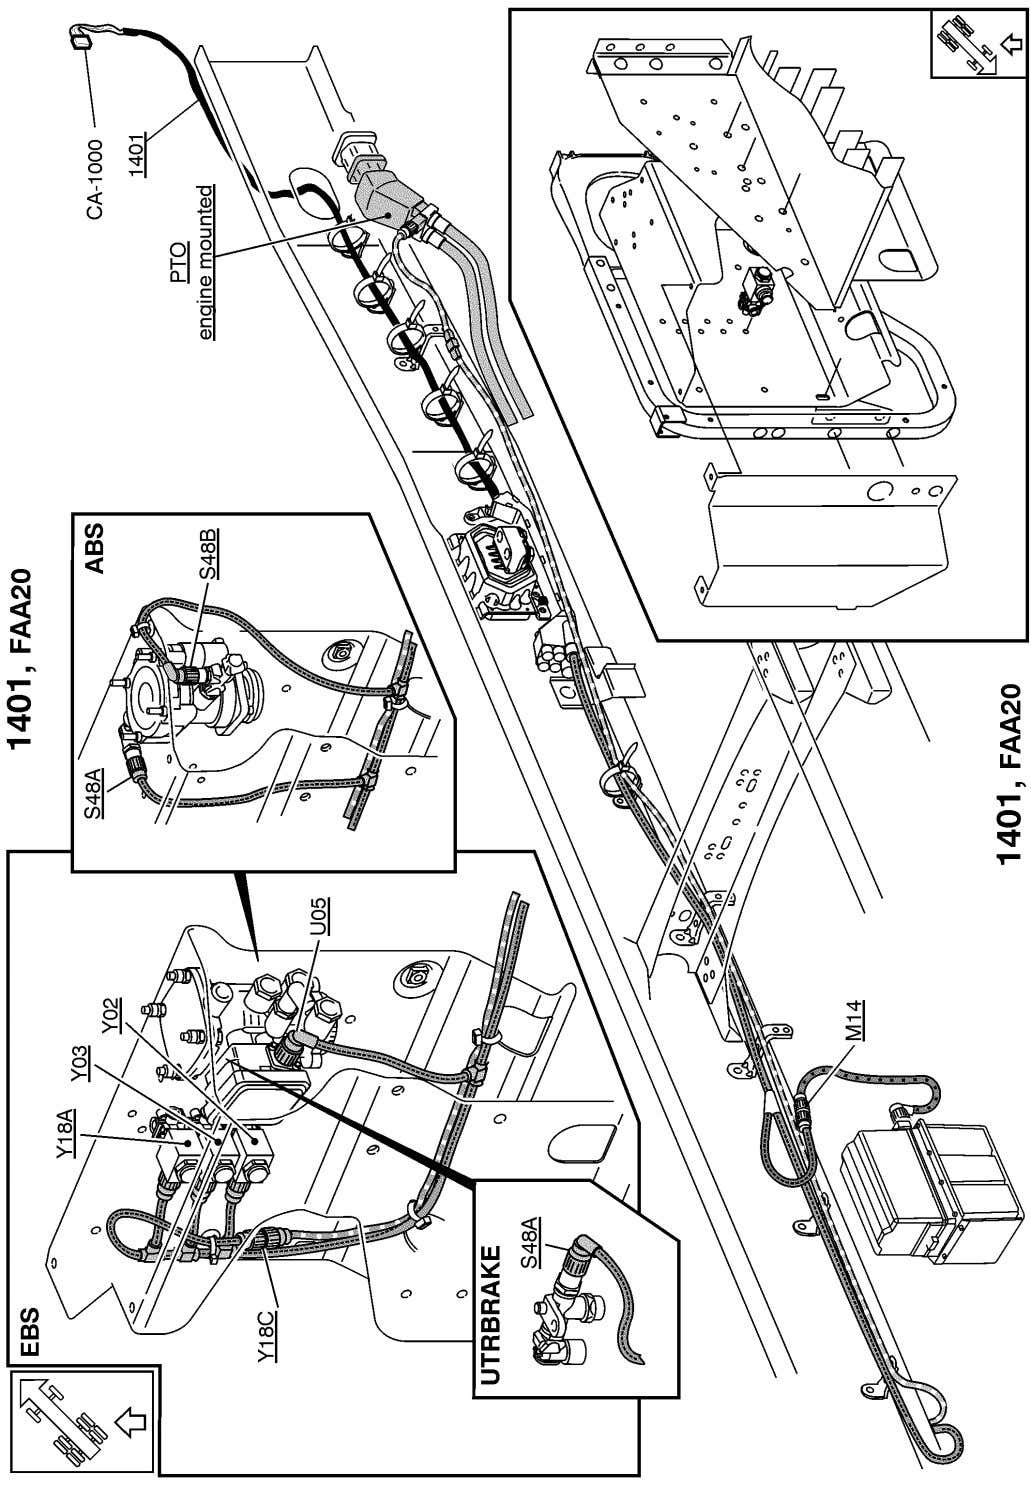 T3029528 Page 196 (298) Wiring diagram